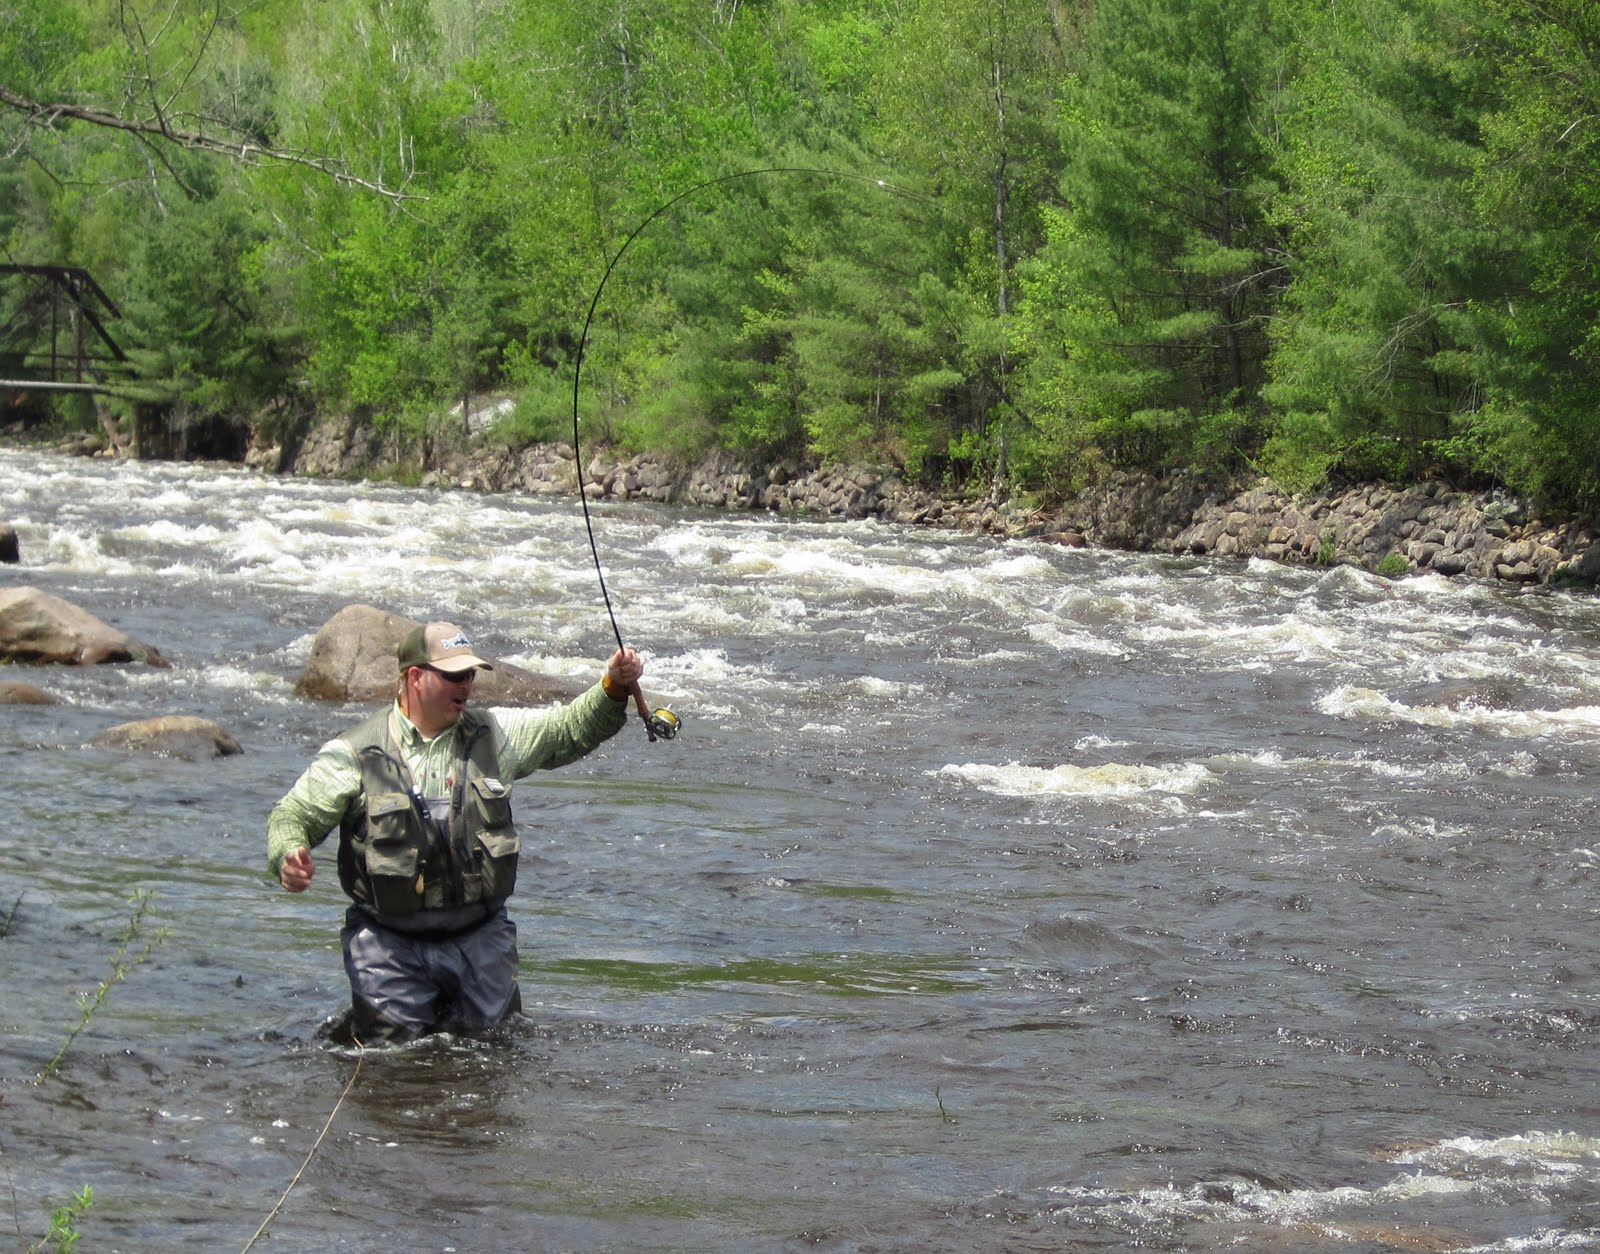 Ruff Waters Fly Fishing: European nymphing the Ausable River